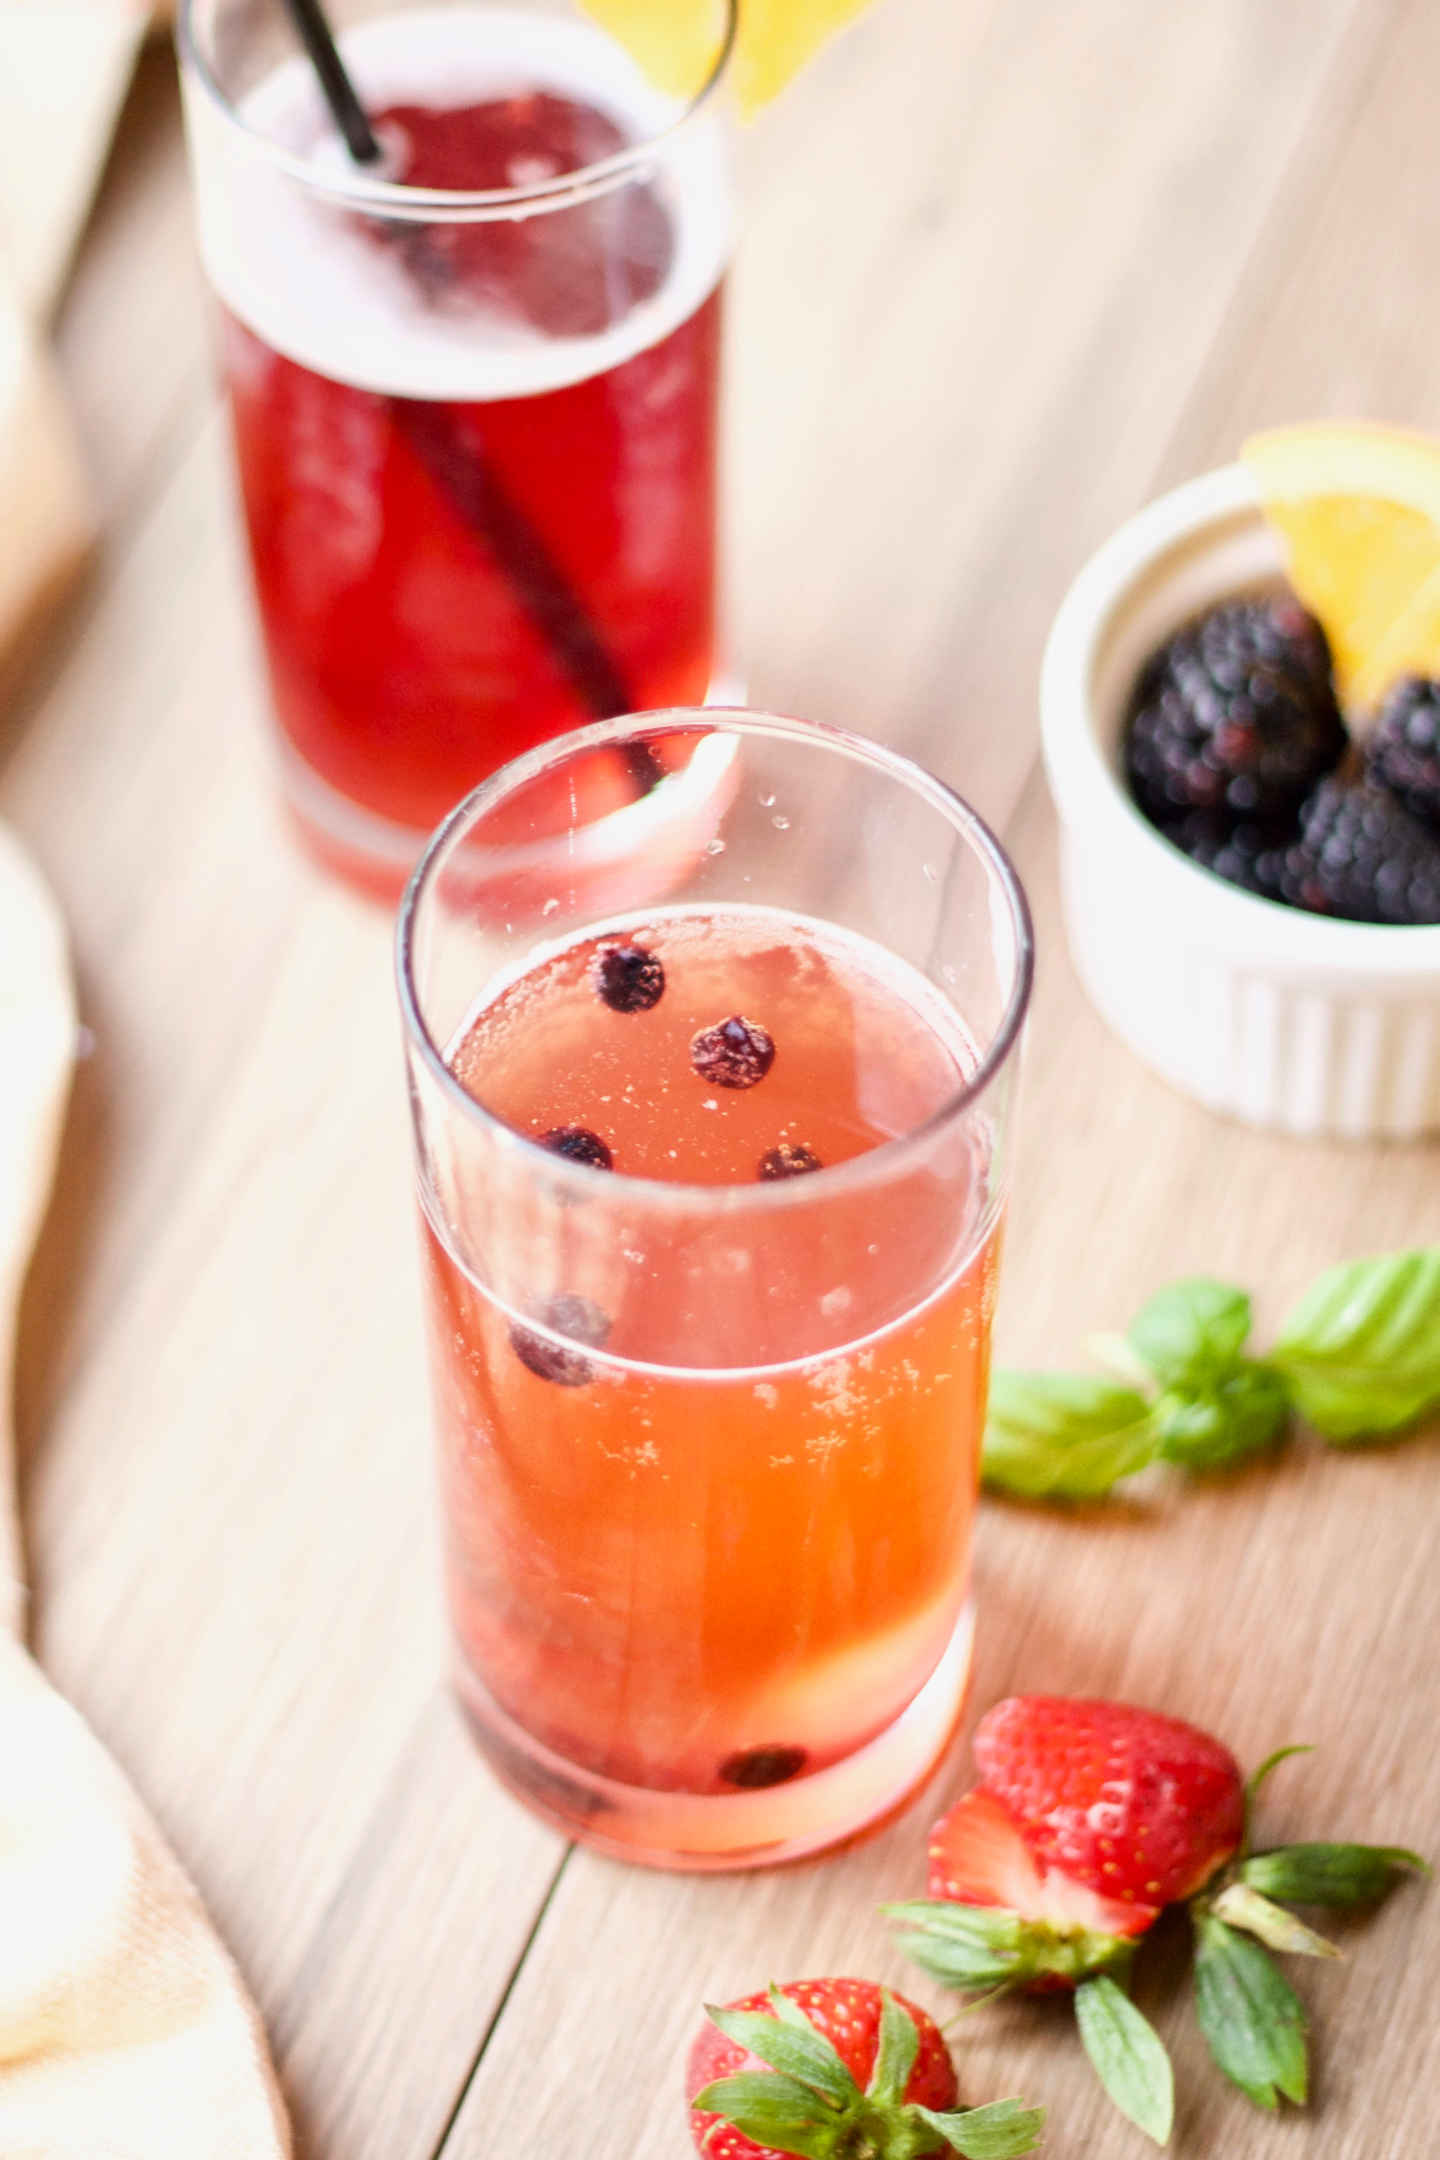 glasses of fizzy berry probiotic fermented tea